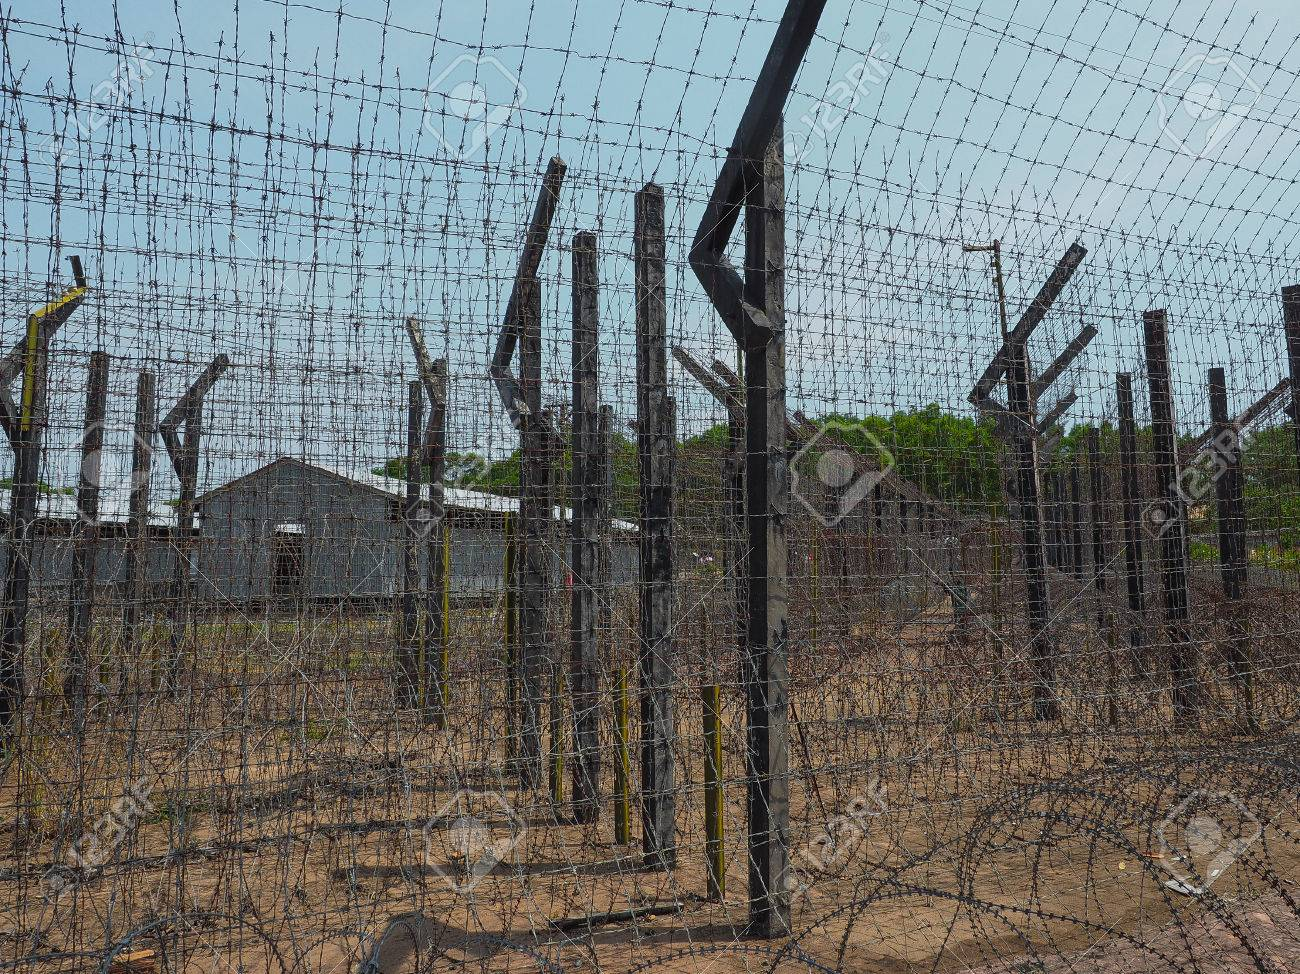 Barb Wire Fence In Coconut Tree Prison In Phu Quoc Island. Vietnam ...